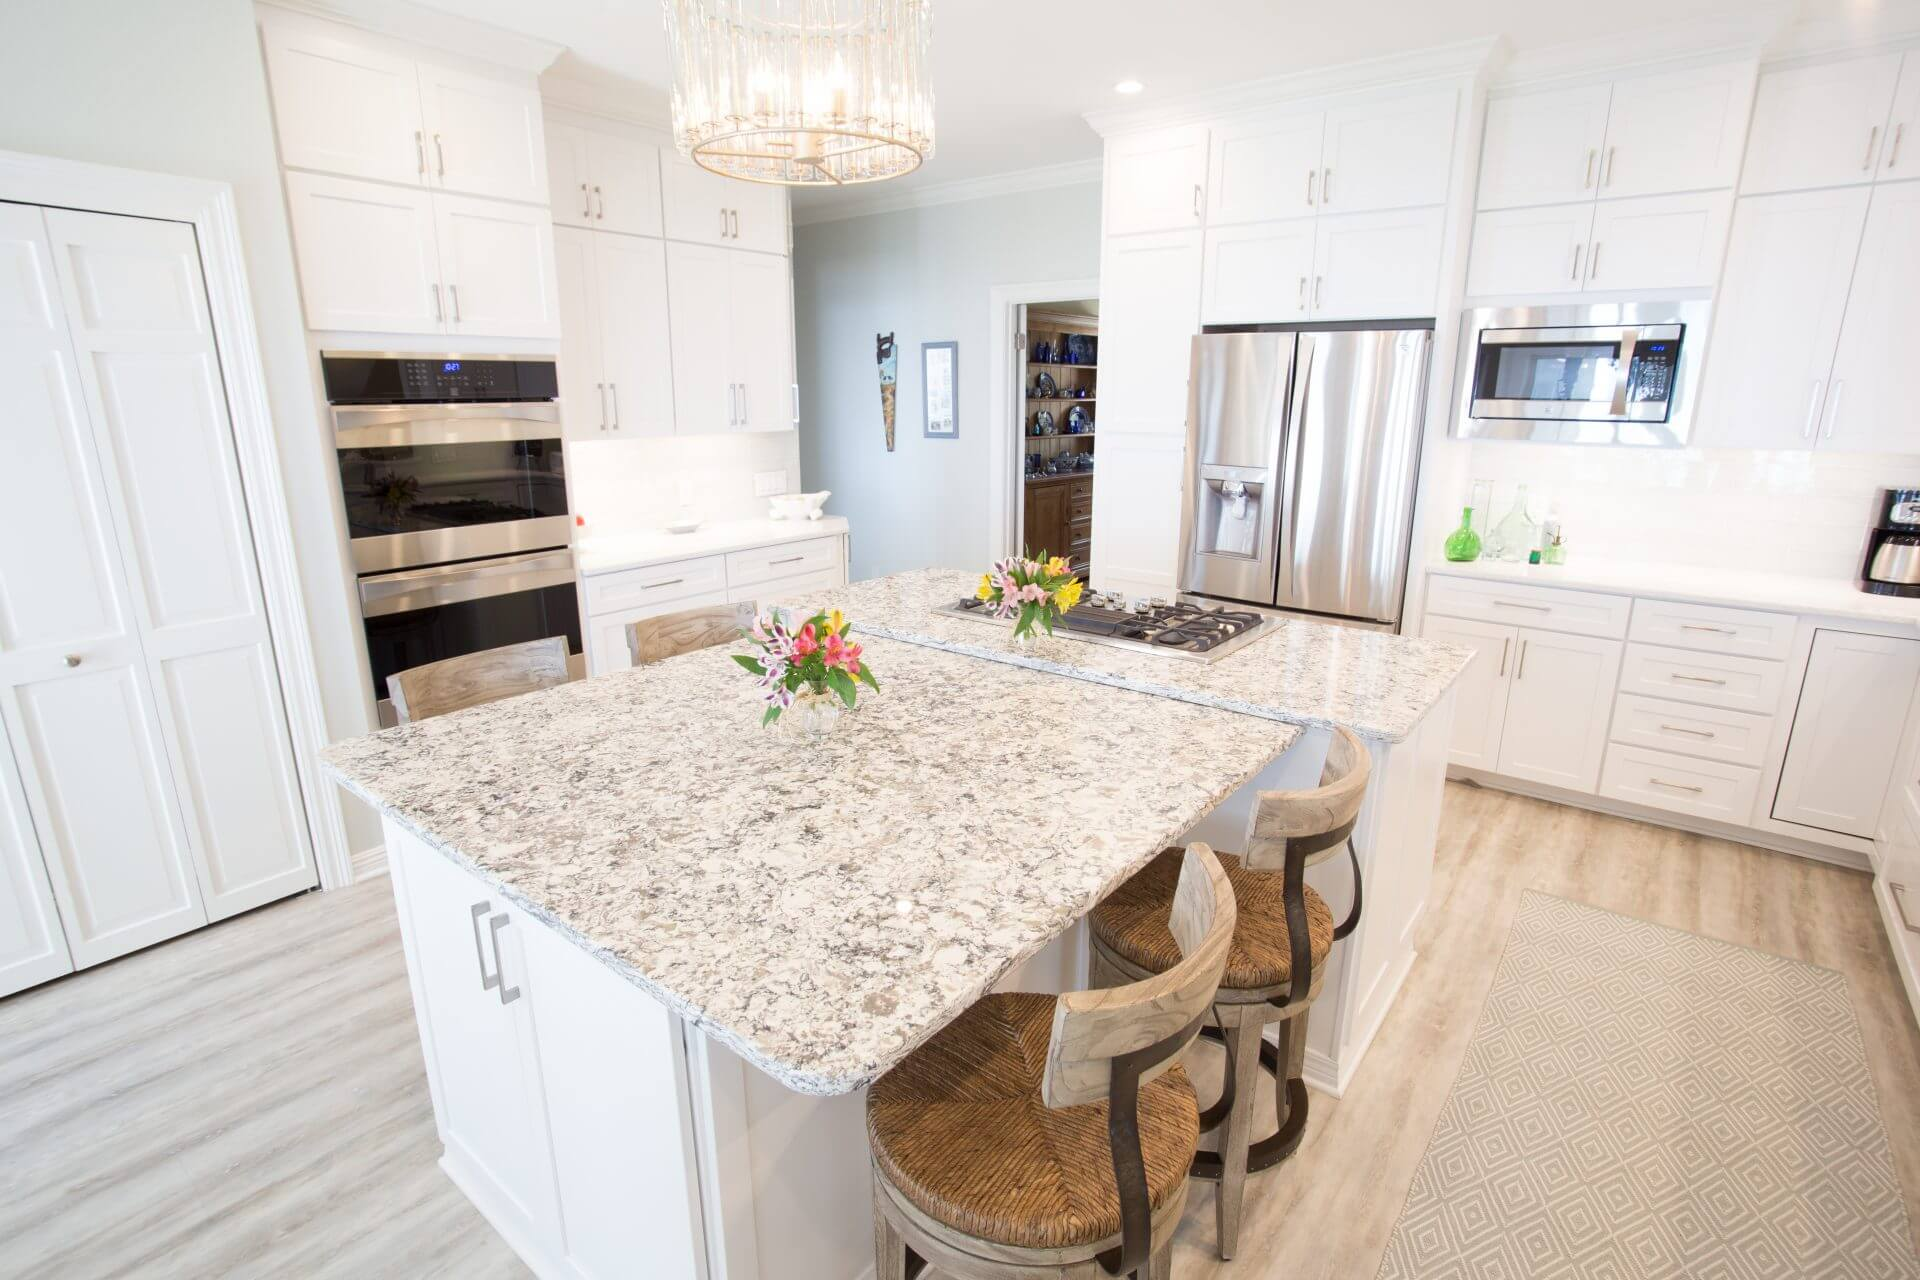 Quartz countertops with white Shaker cabinets and modern hardware